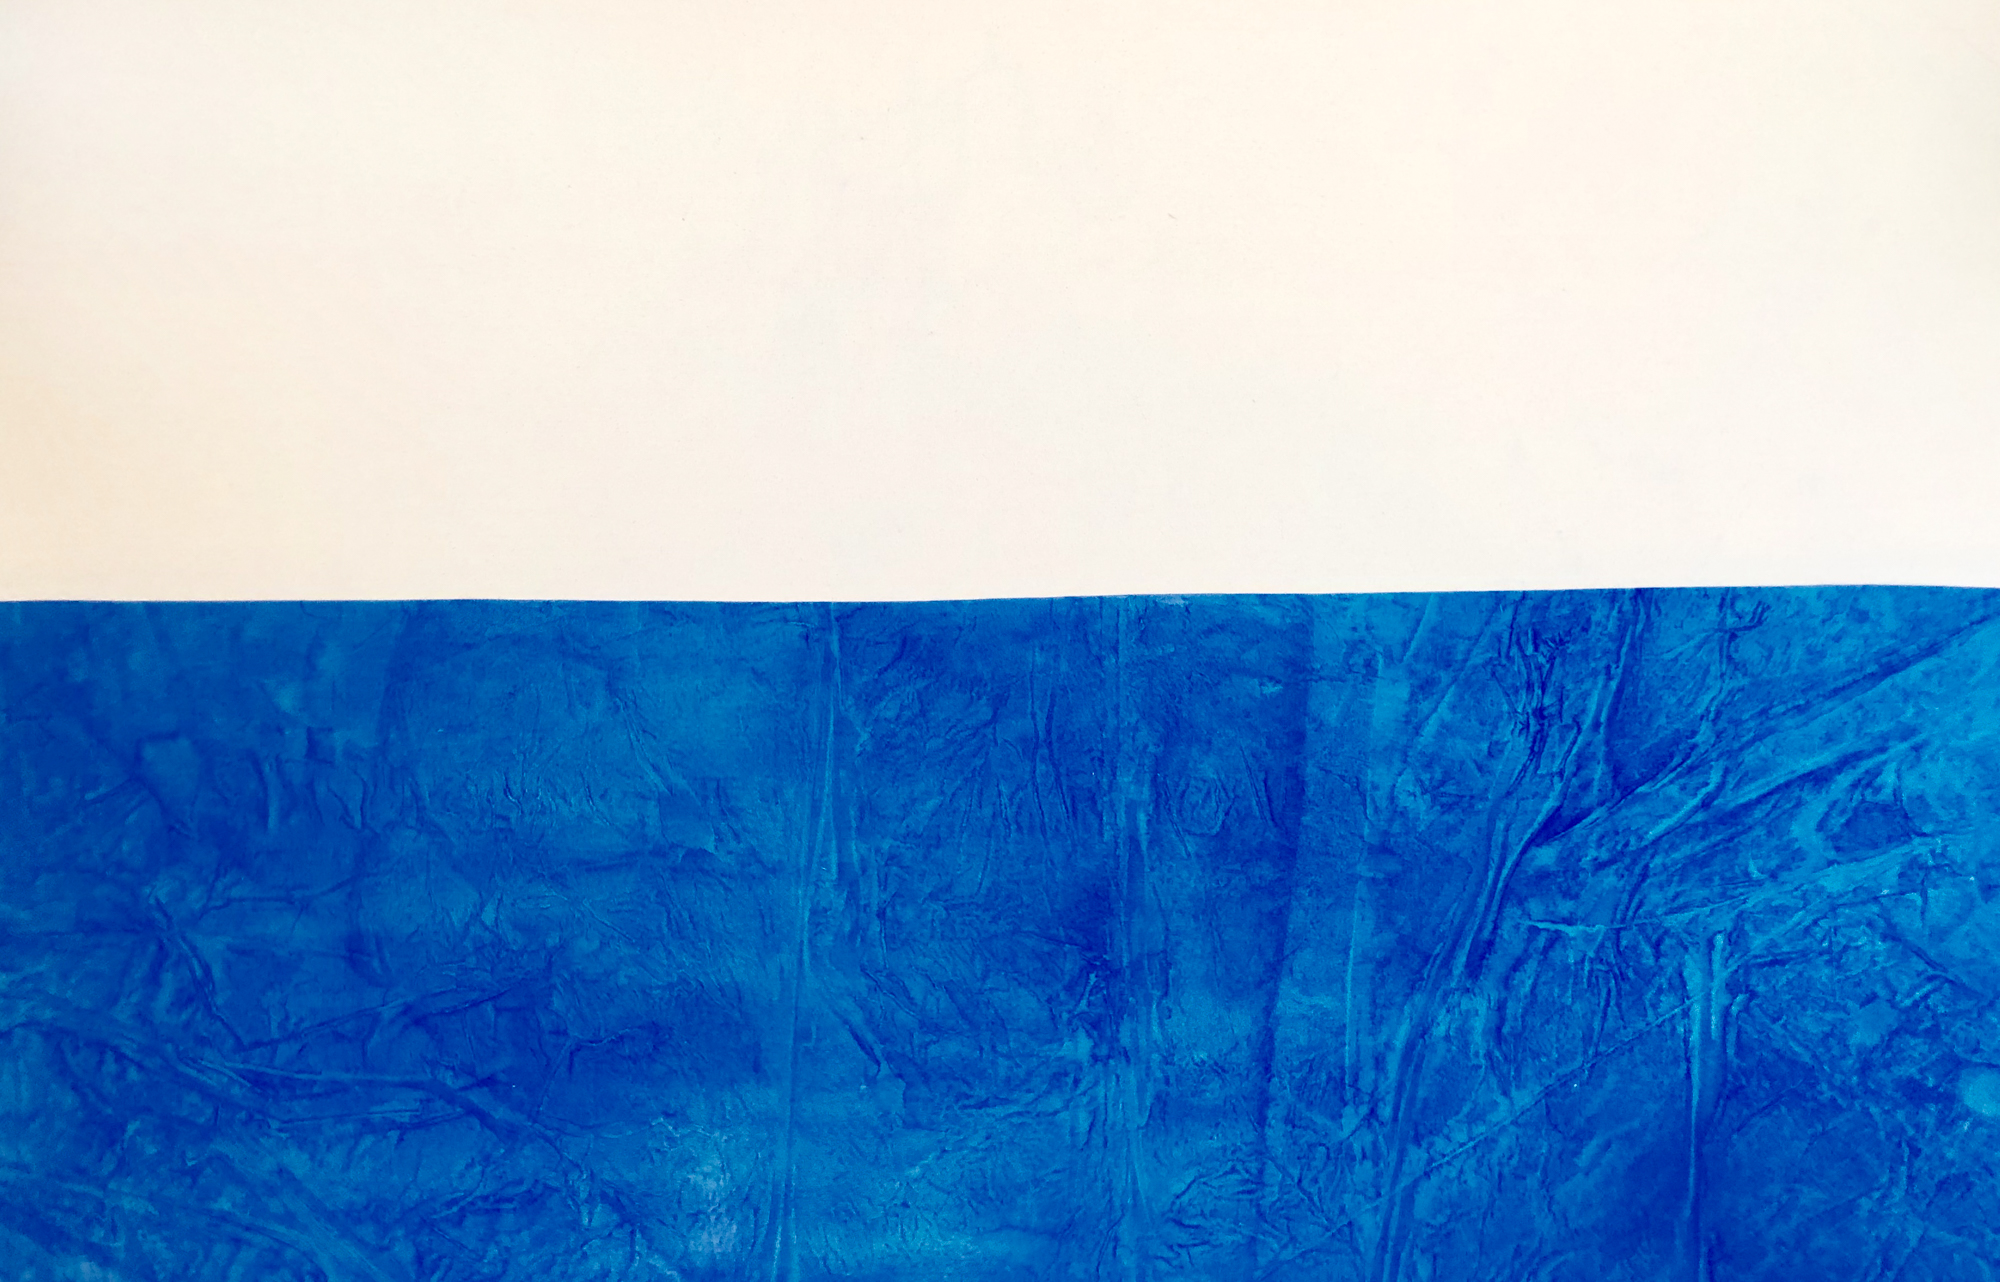 Blue Horizon, 2018, mixed media on canvas, 48 x 72 in, $15,000